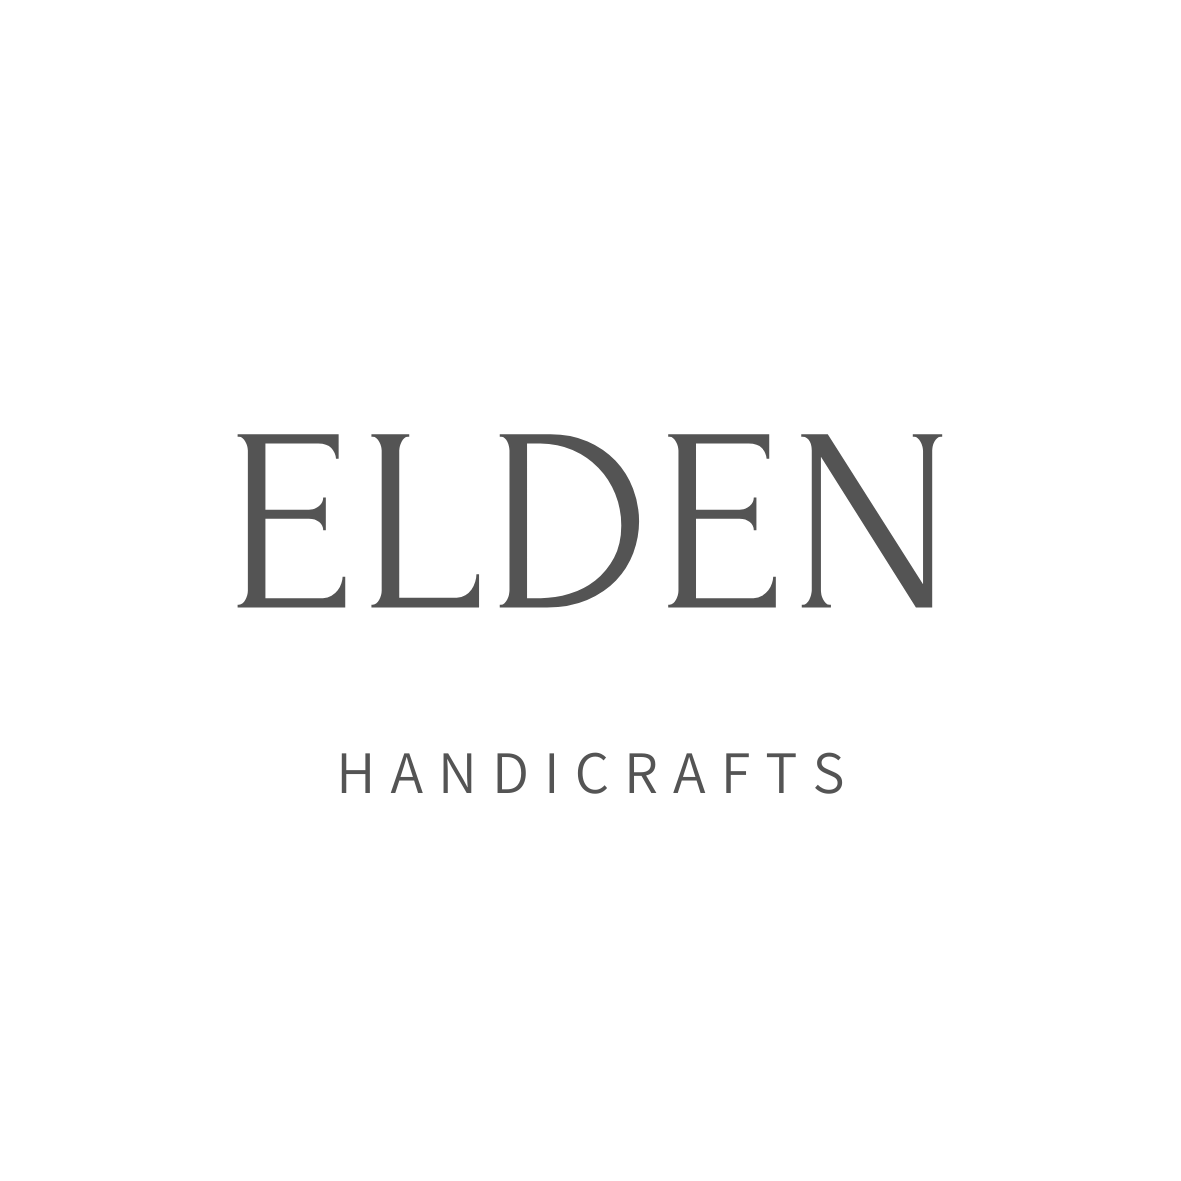 Elden Handicrafts